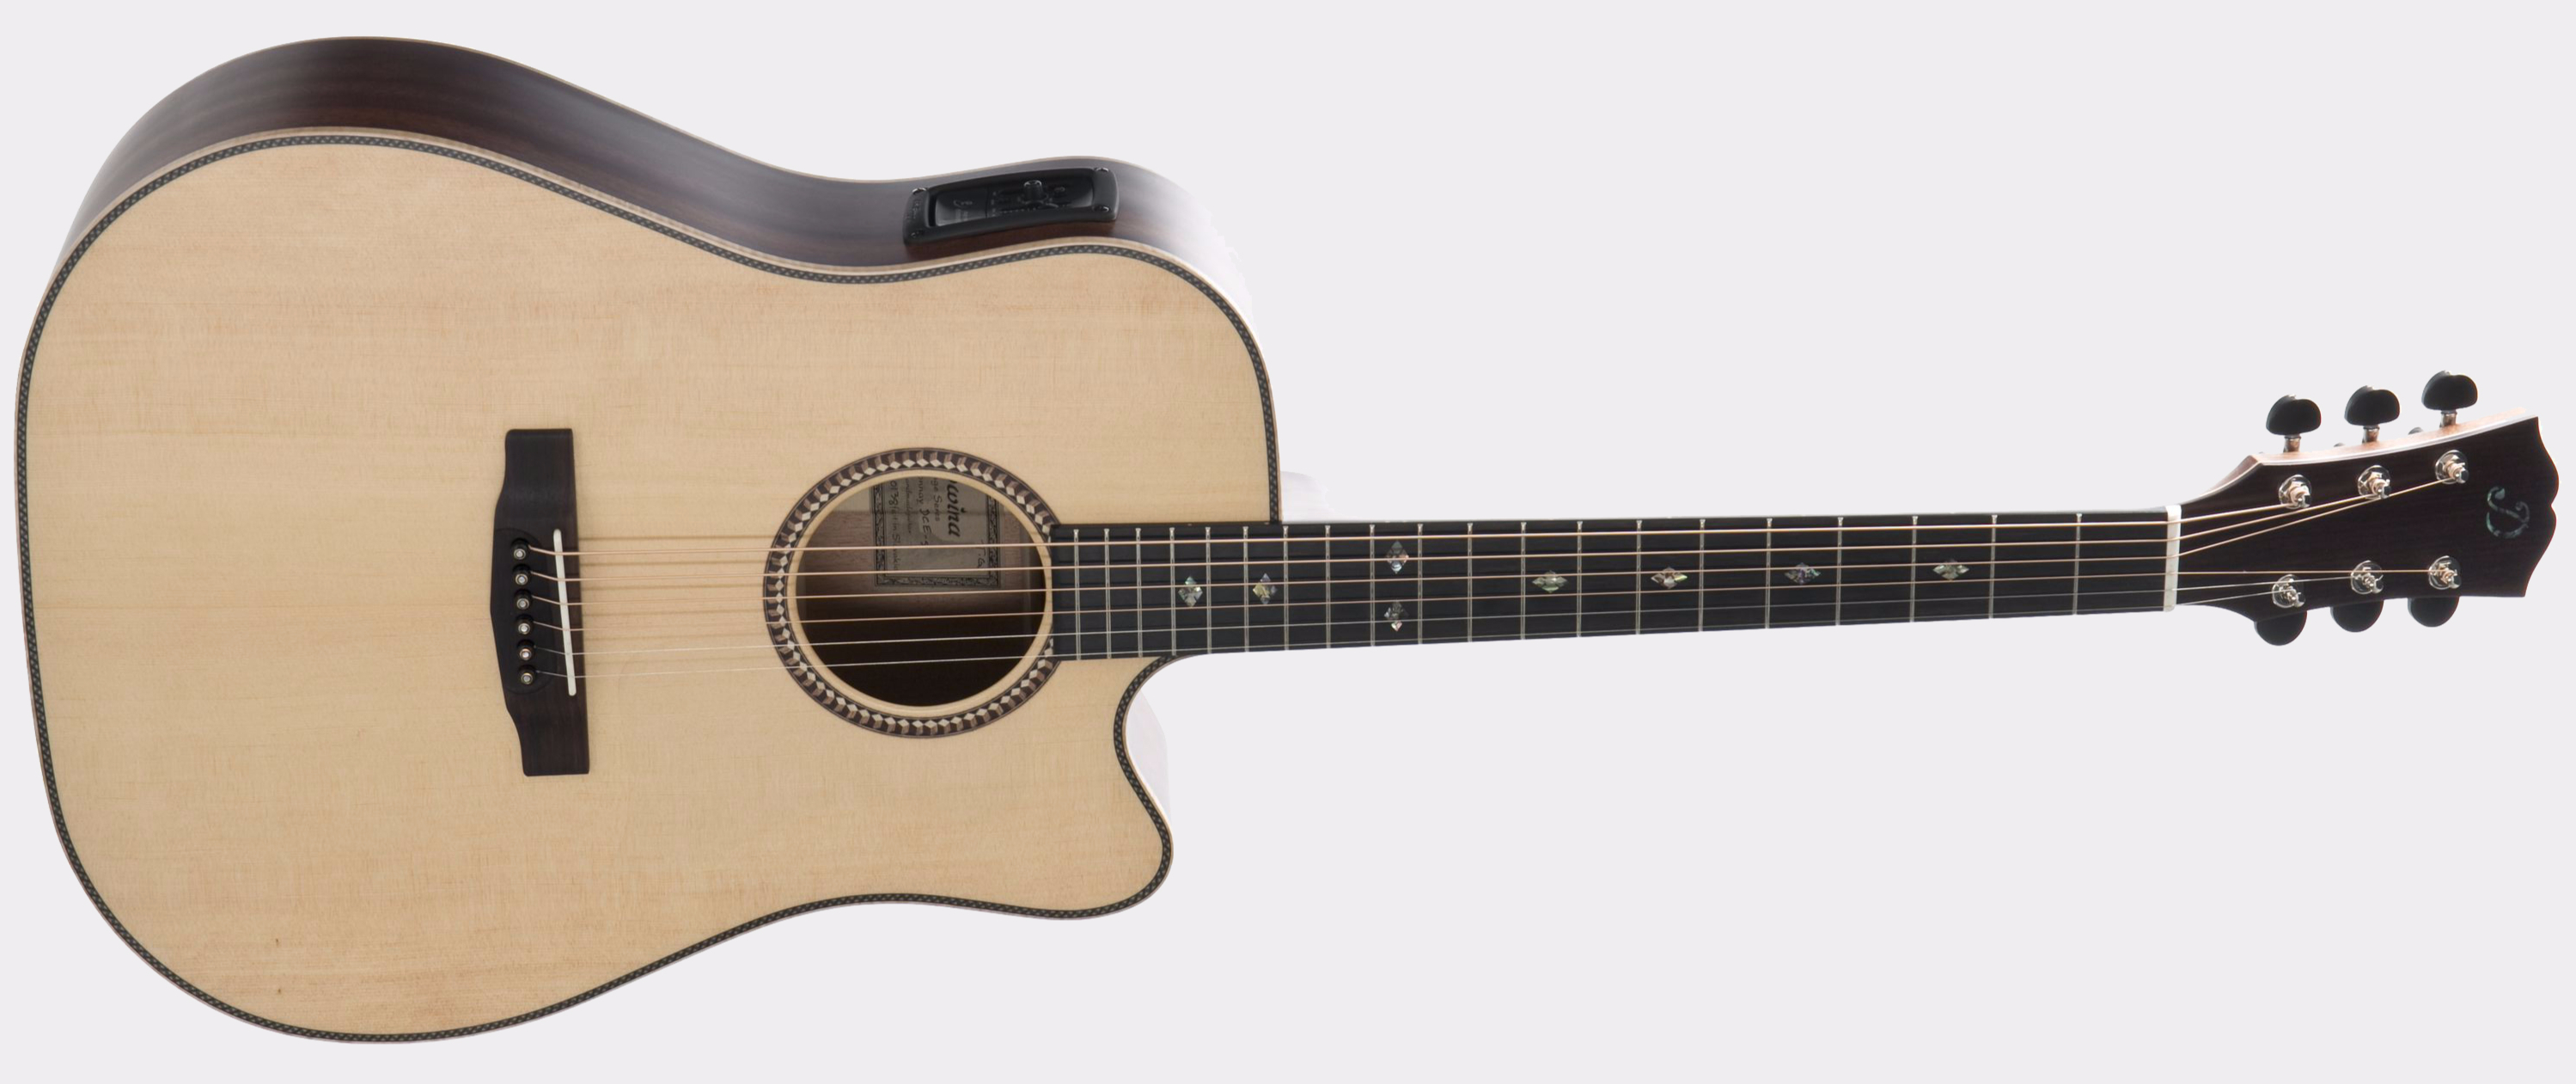 Dowina Guitars Chardonnay DCE Natural